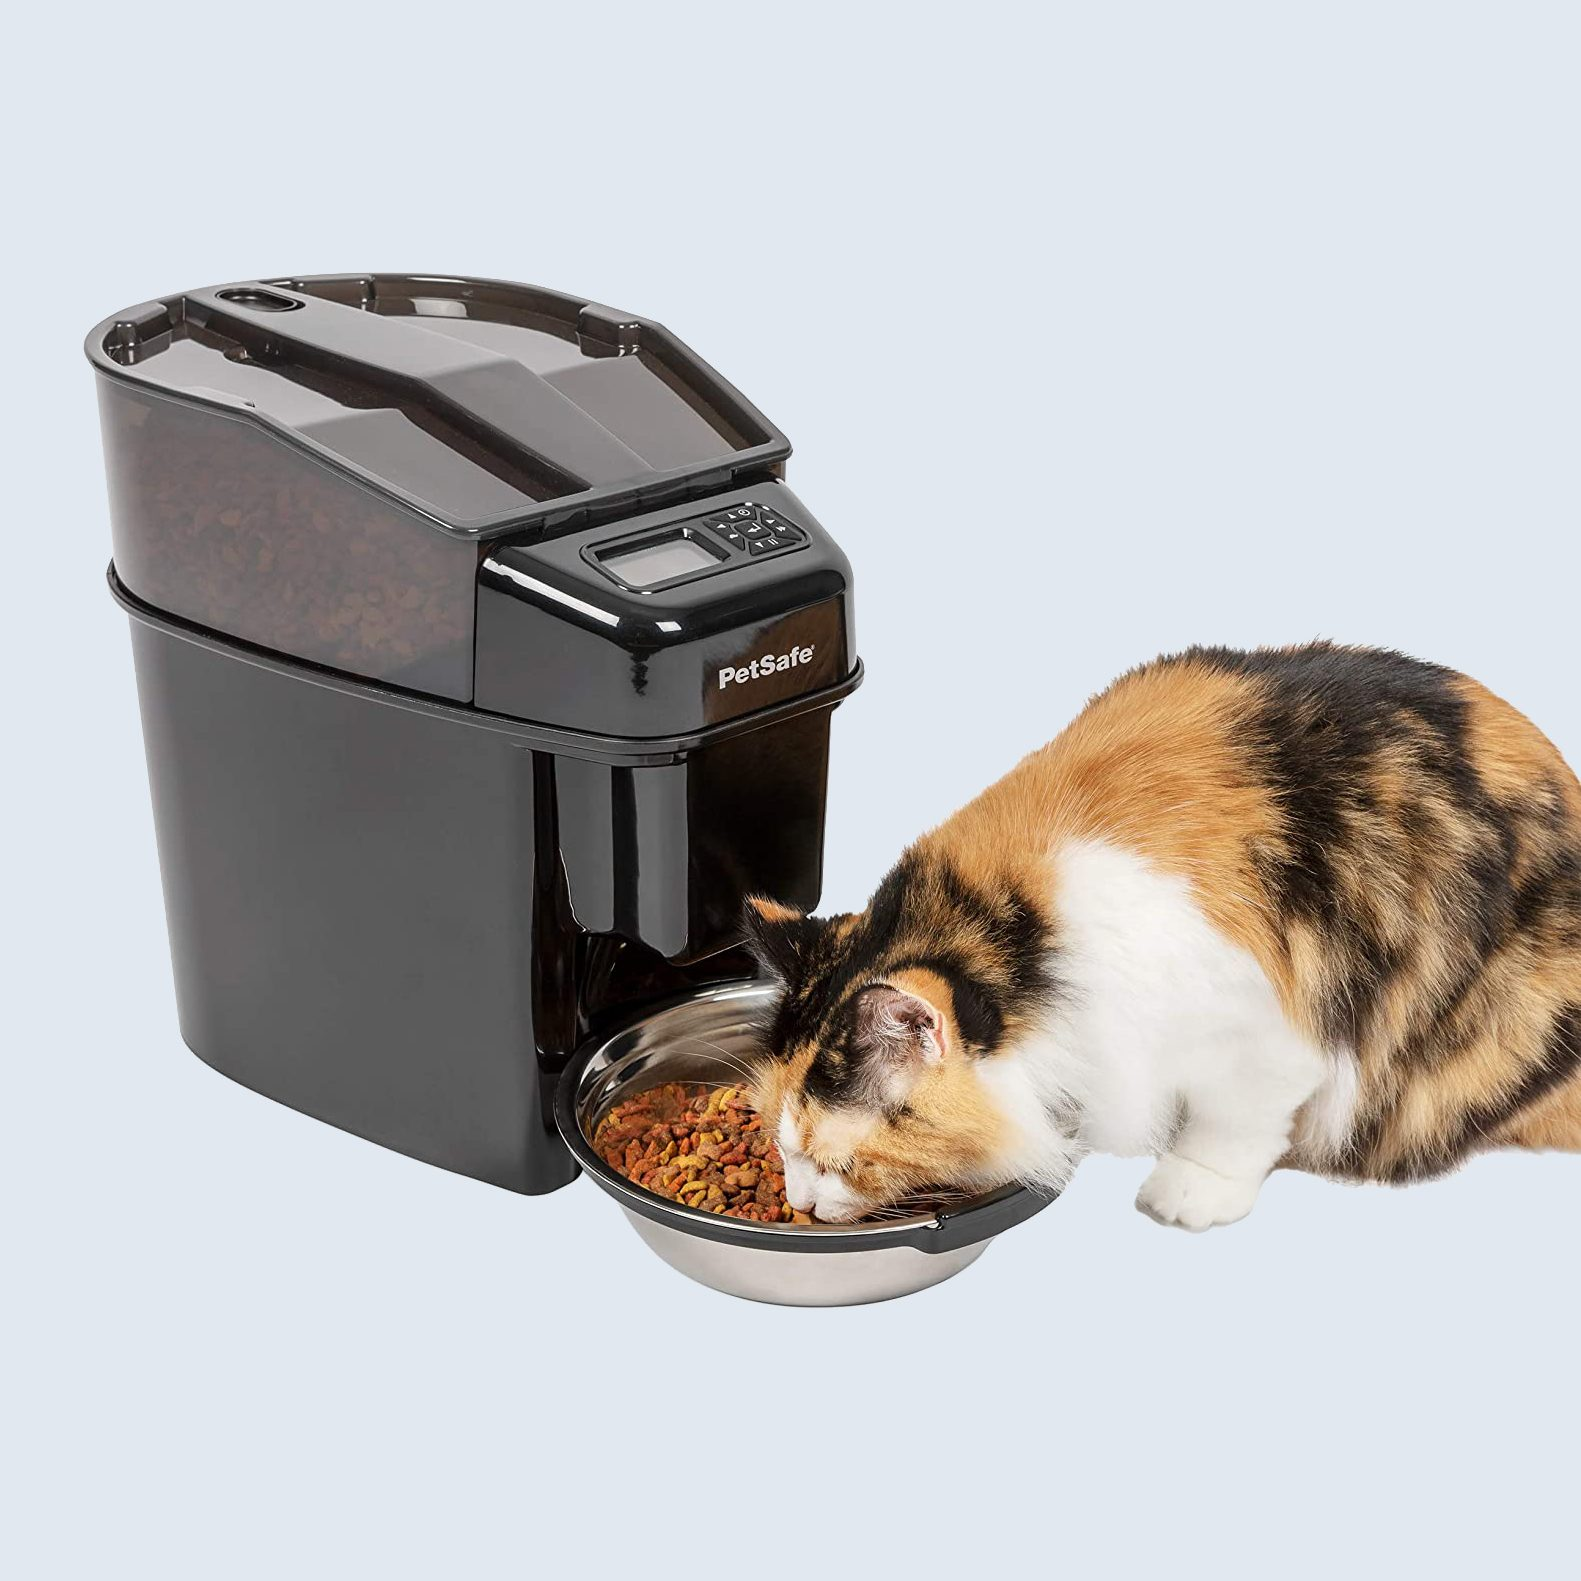 PetSafe Automatic Cat and Dog Feeder